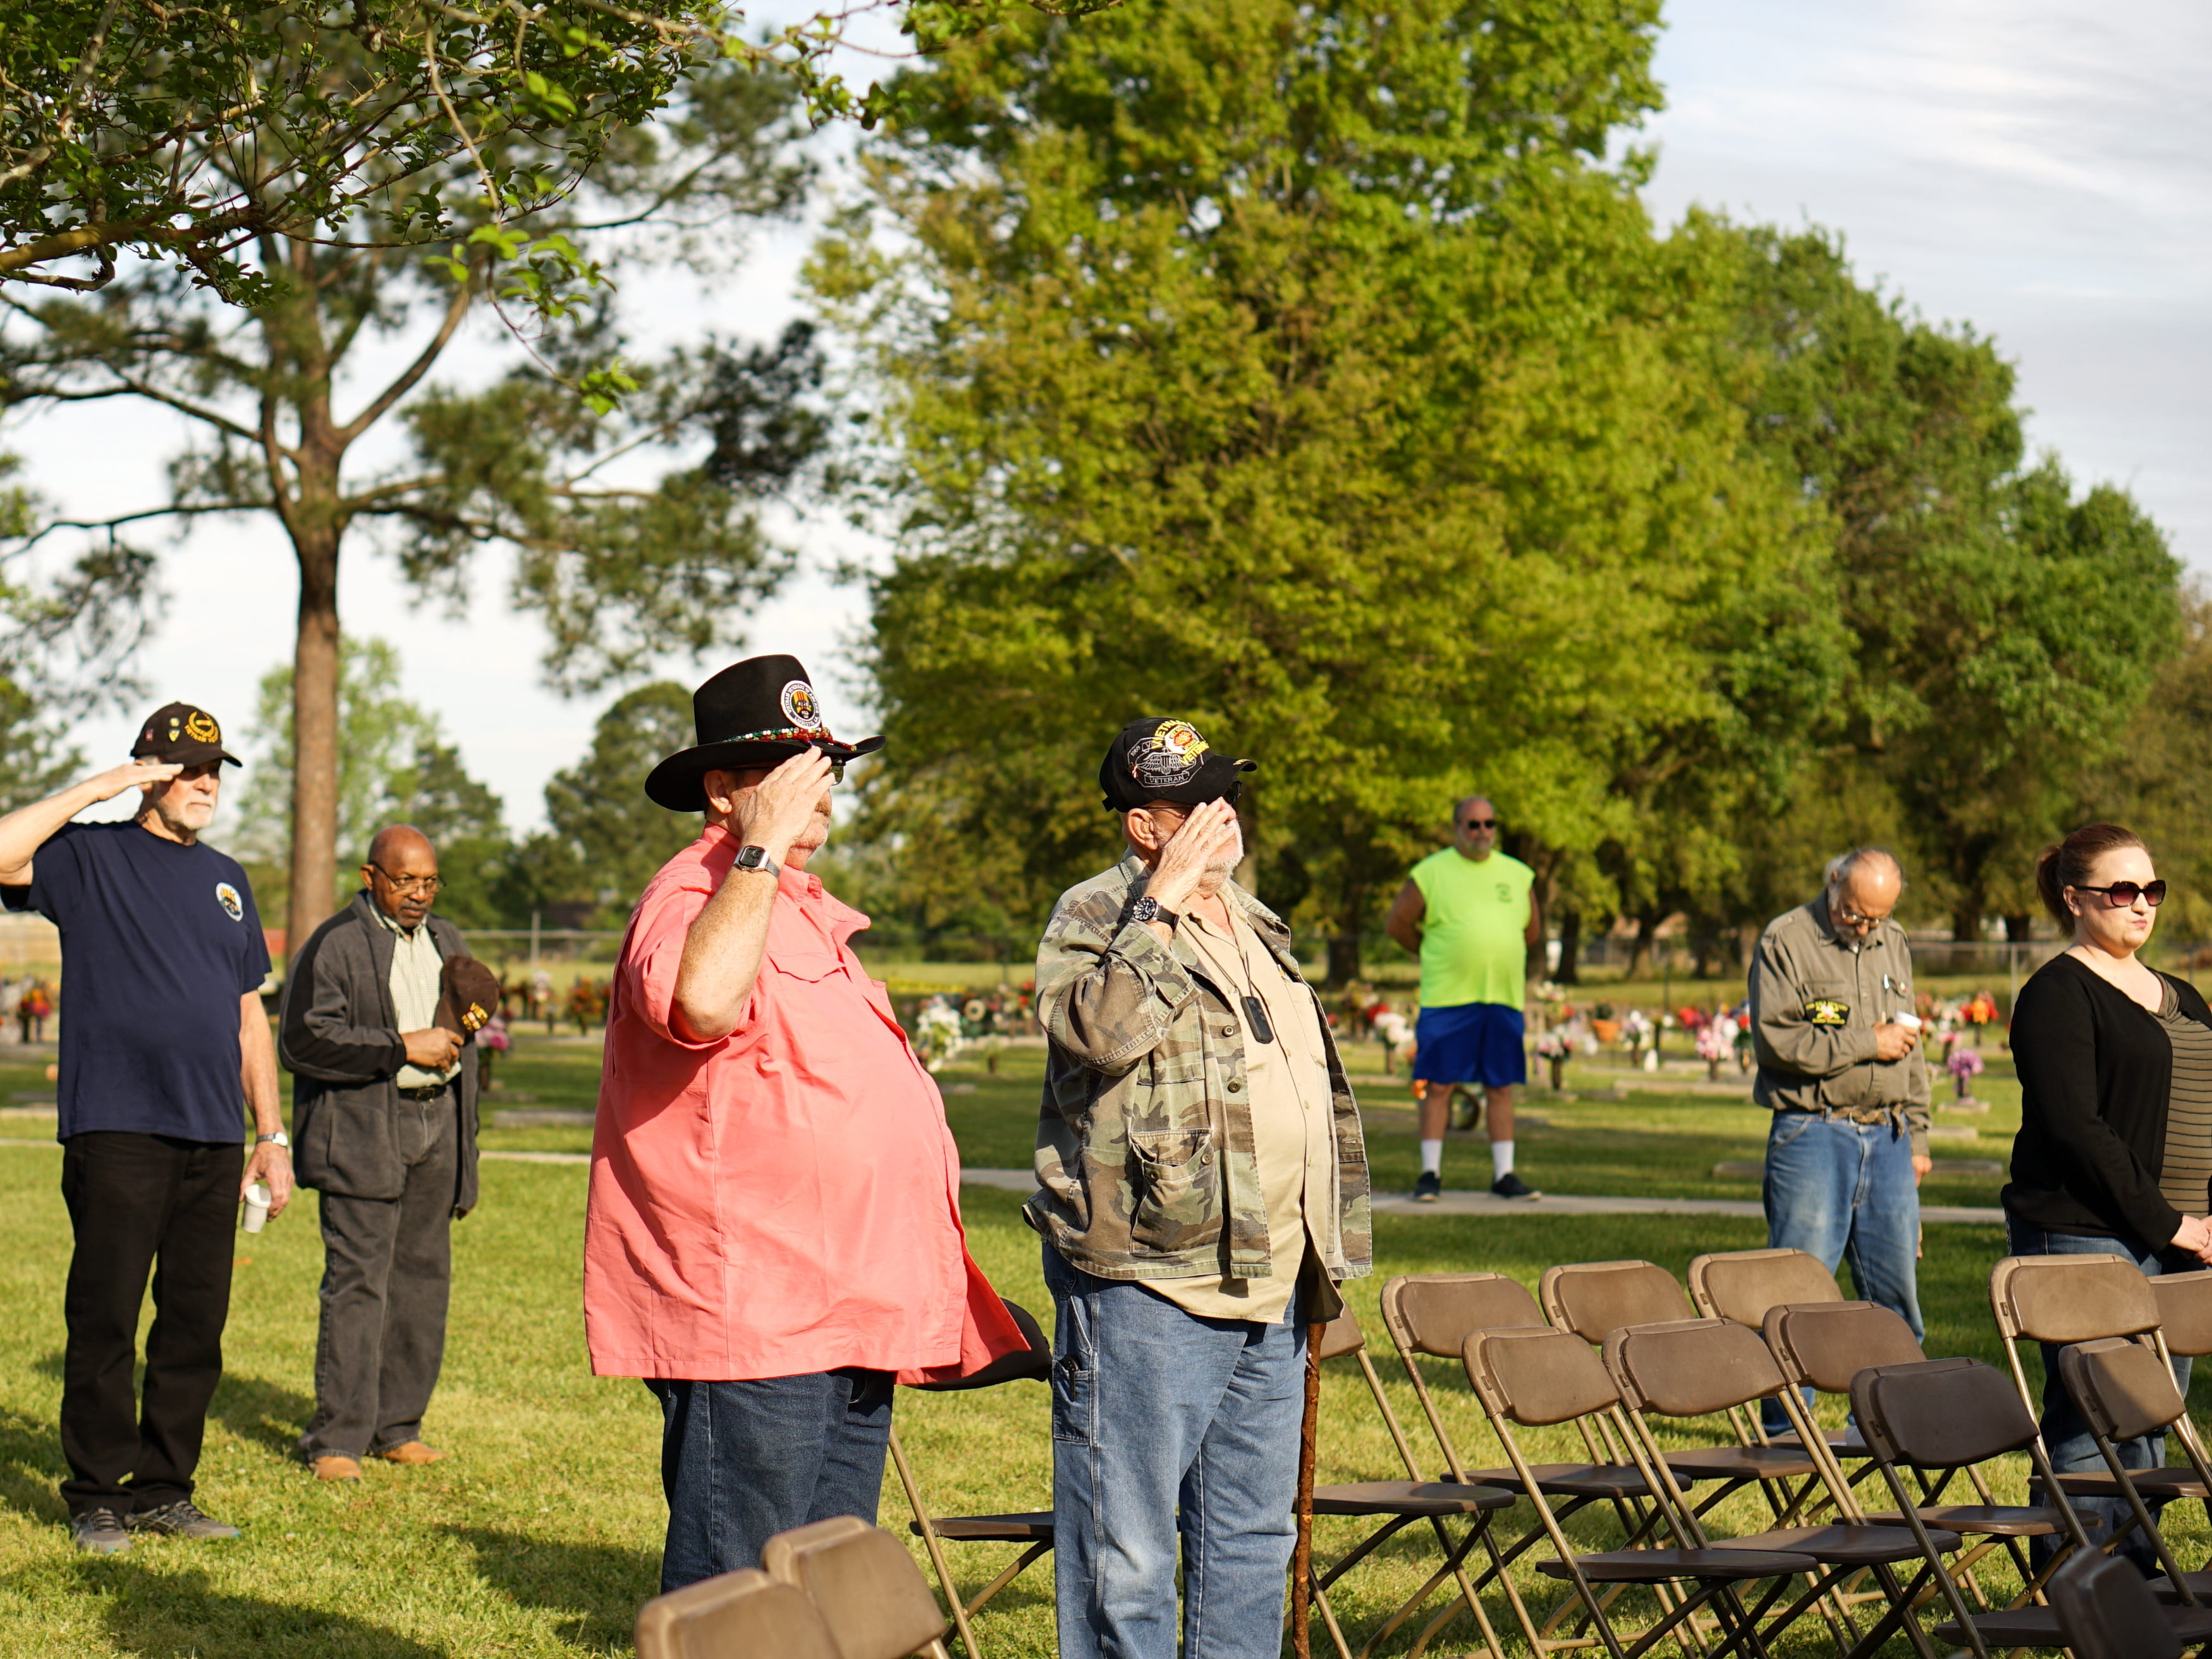 """Onlookers and veterans salute during the """"Welcome Home Vietnam Veterans"""" event at Fountain Memorial Funeral Home and Cemetery in Lafayette on Friday, March 29, 2019."""